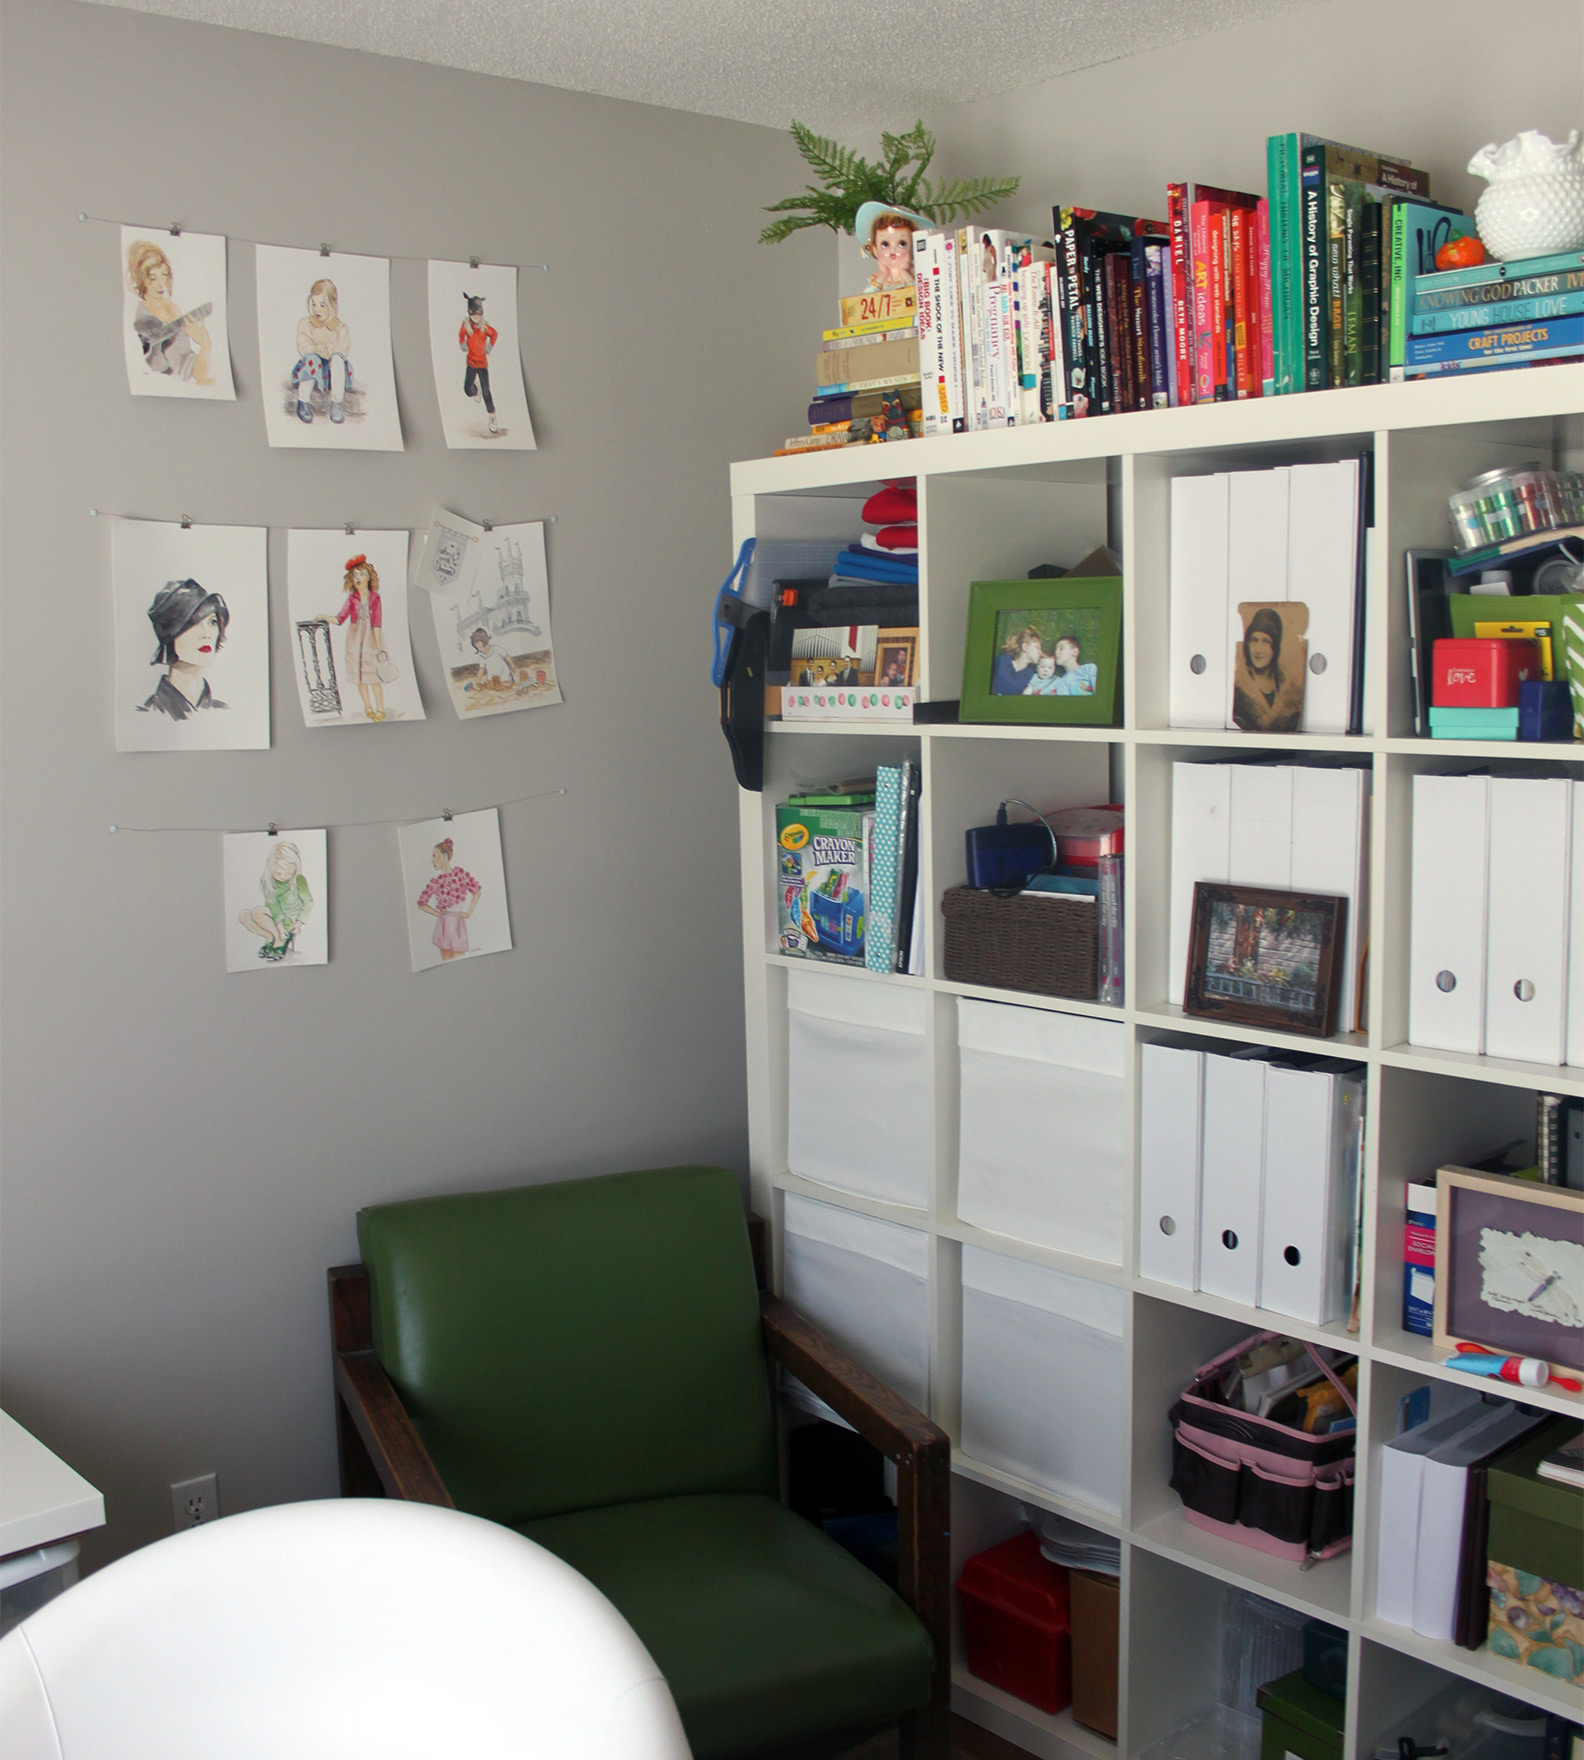 """Another view... the shelves are not exactly """"styled"""" yet but that will come eventually. I want them to function as well as look good so I plan to take my time."""